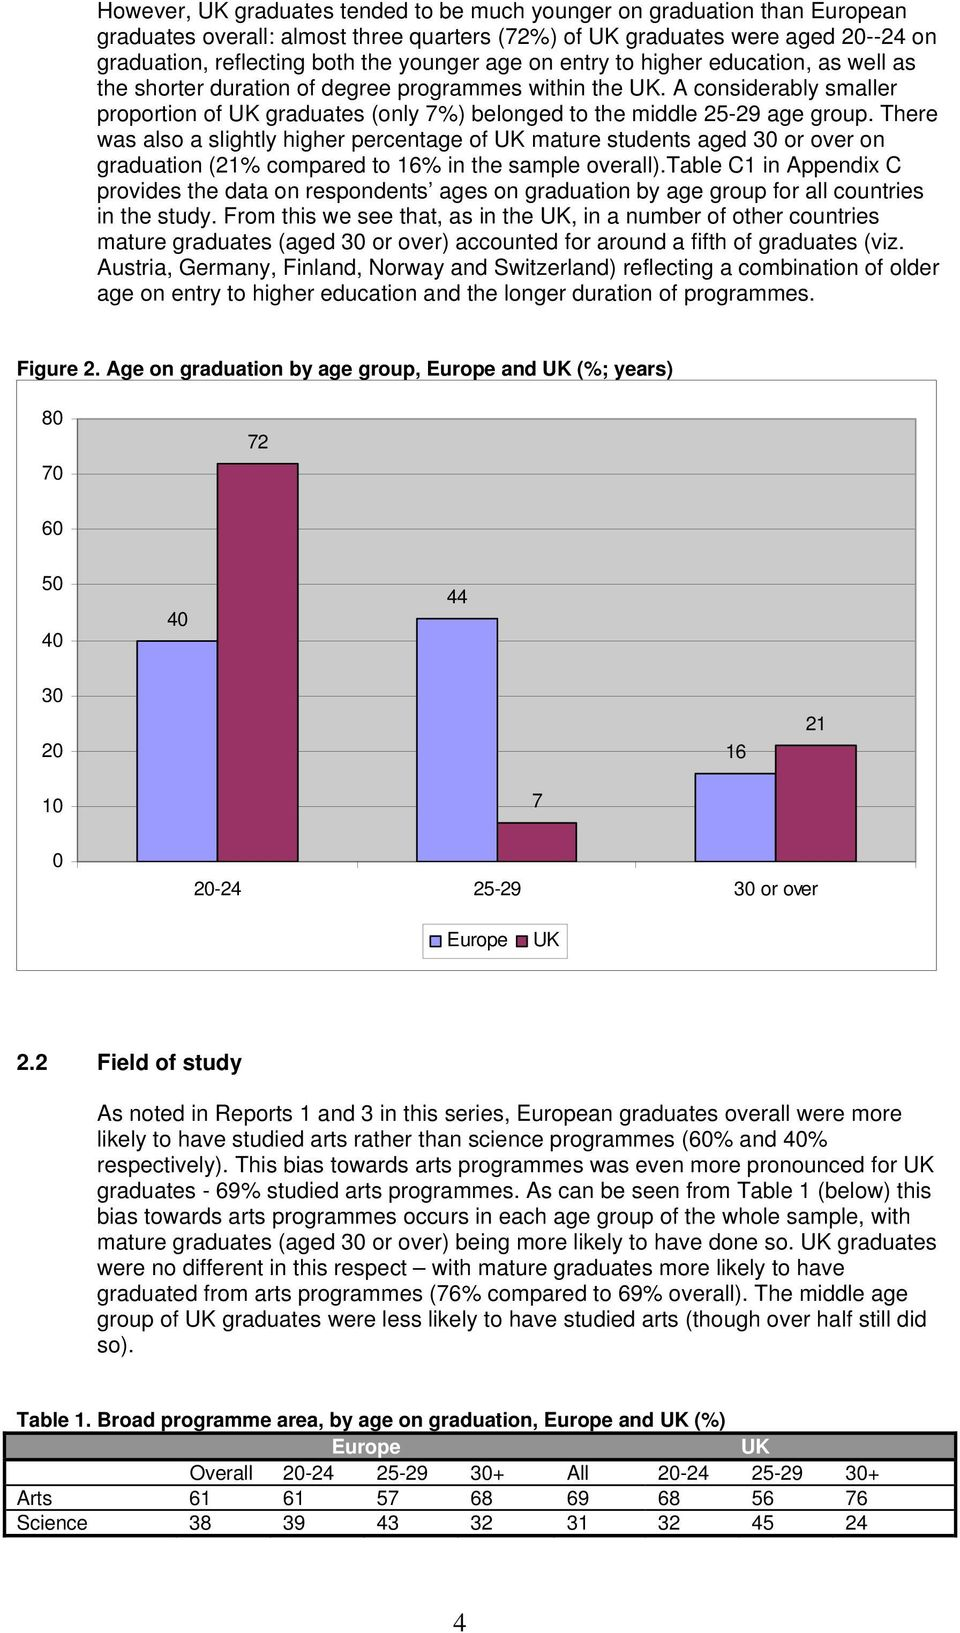 A considerably smaller proportion of UK graduates (only 7%) belonged to the middle 25-29 age group.